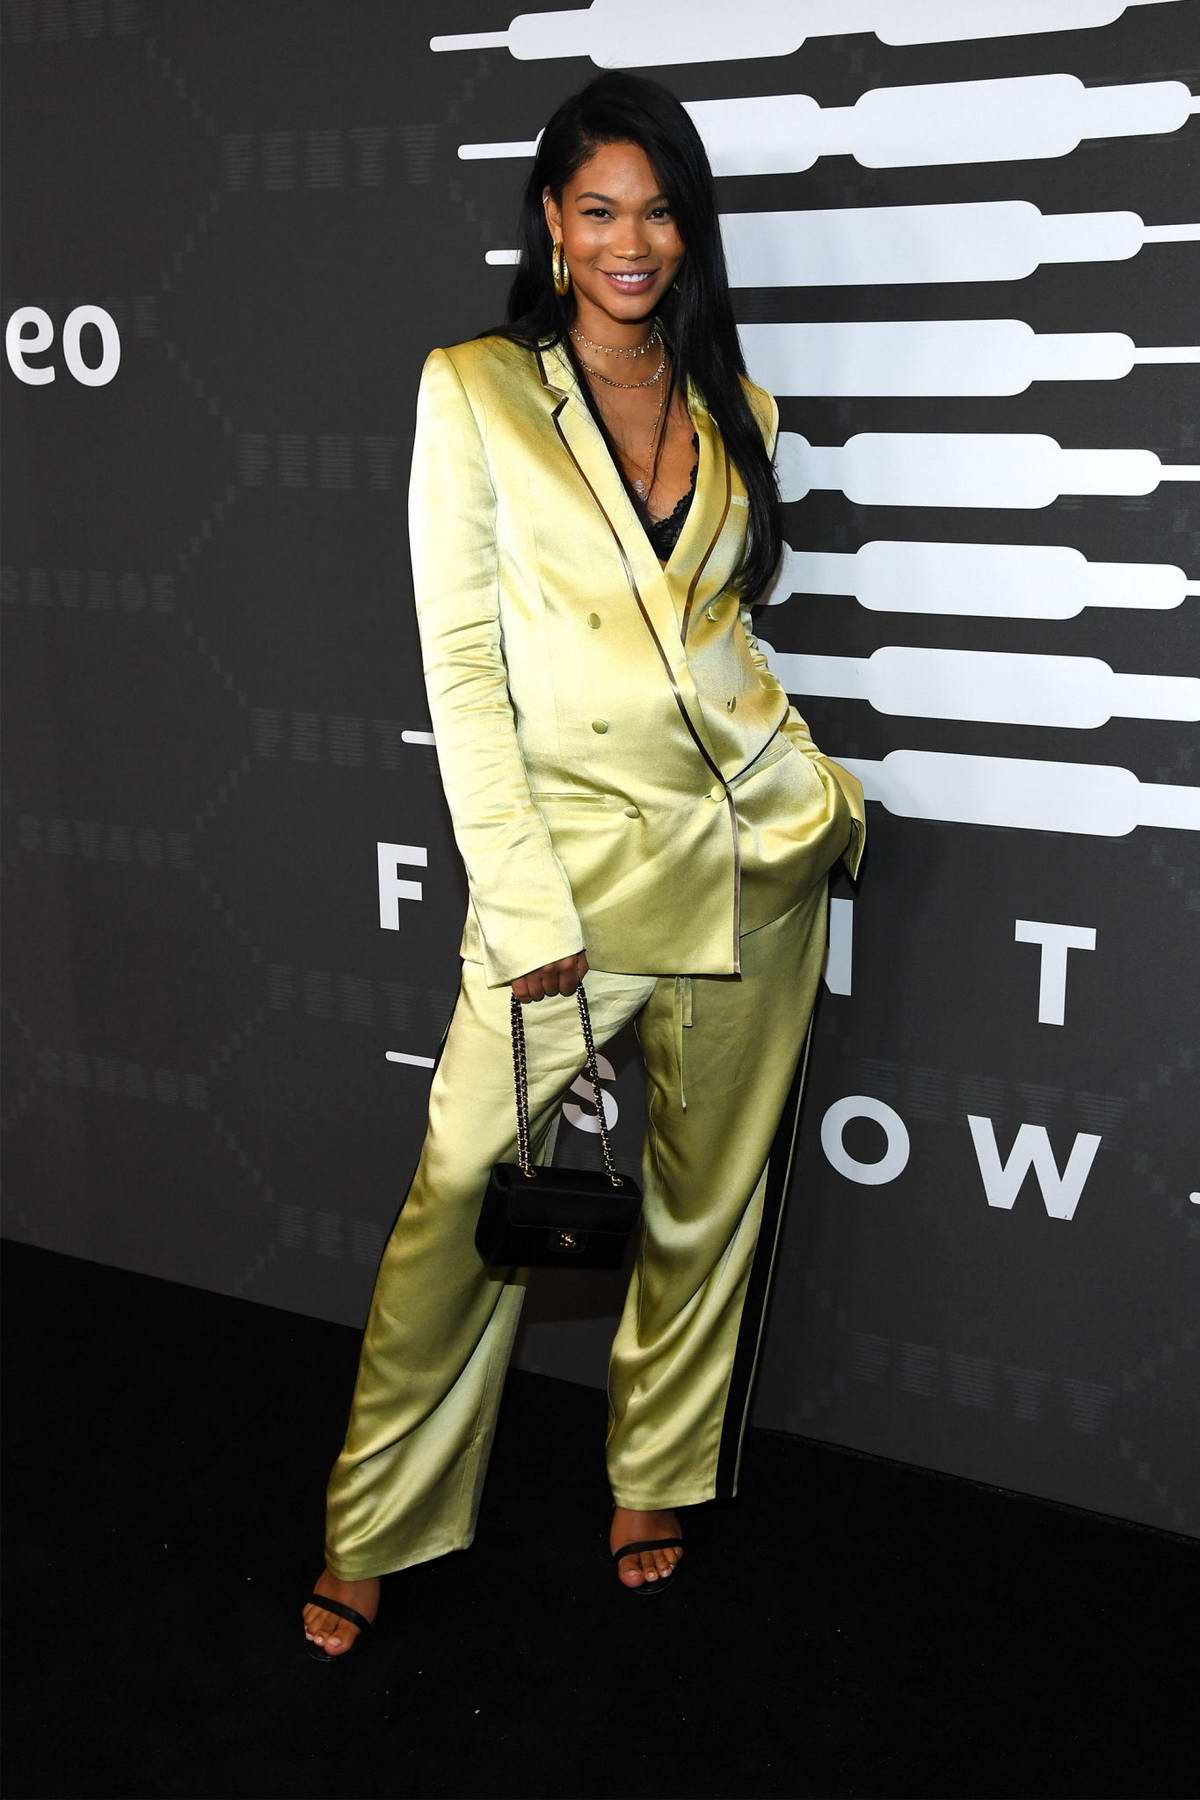 Chanel Iman attends Savage X Fenty Show during New York Fashion Week at Barclays Center in Brooklyn, New York City